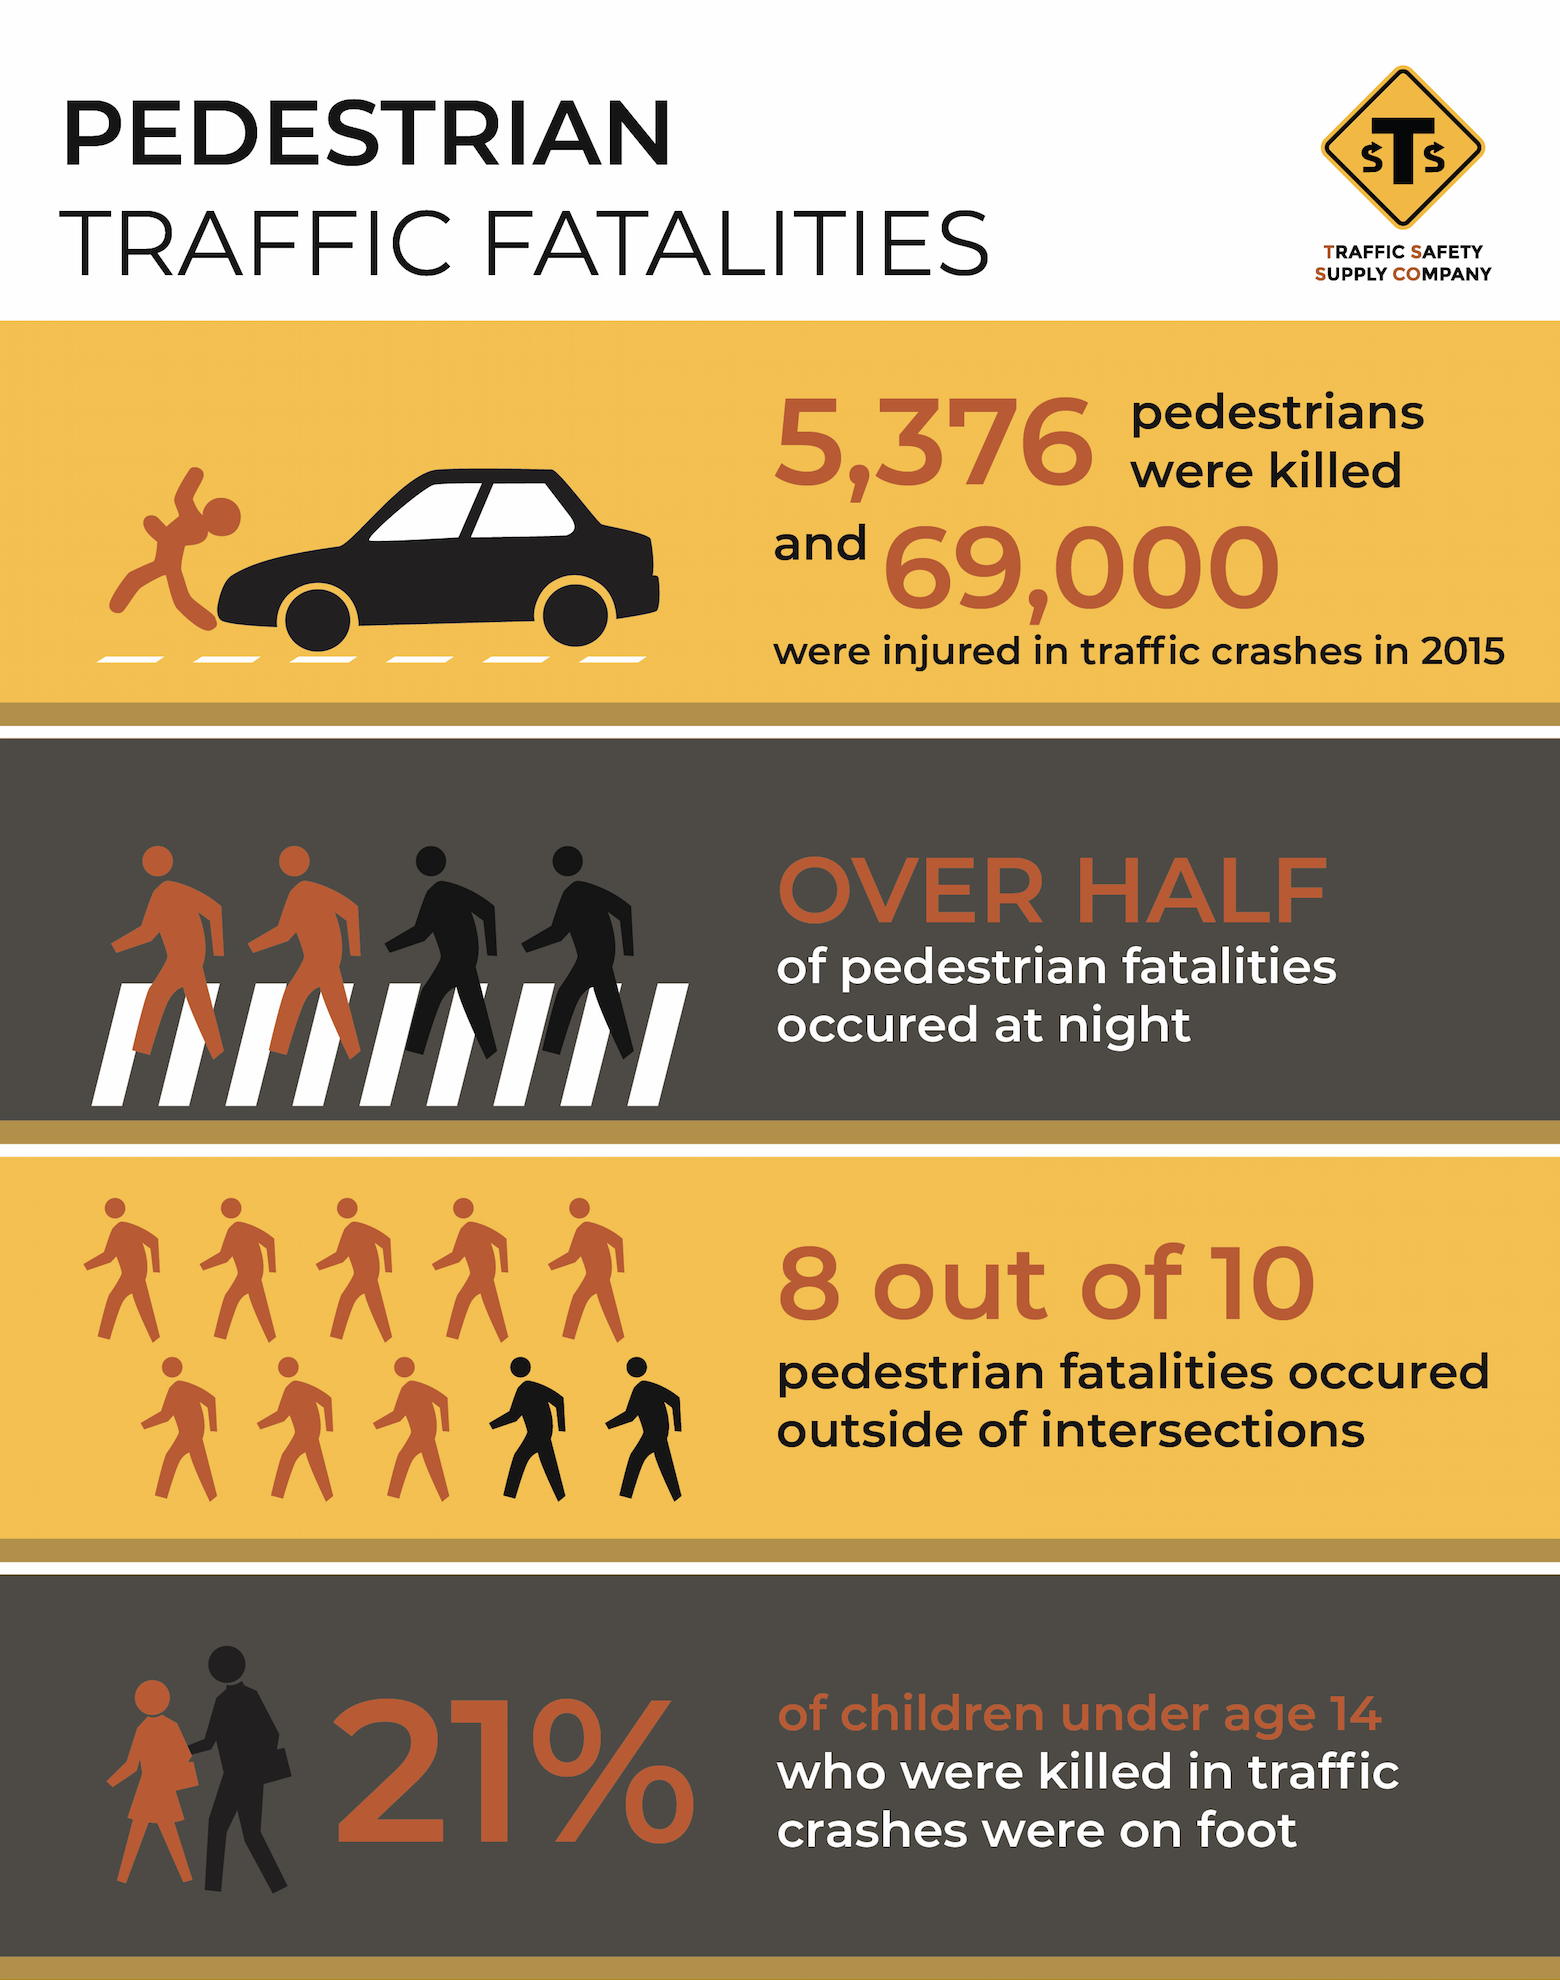 Tips For Pedestrian Safety Traffic Safety Supply Company